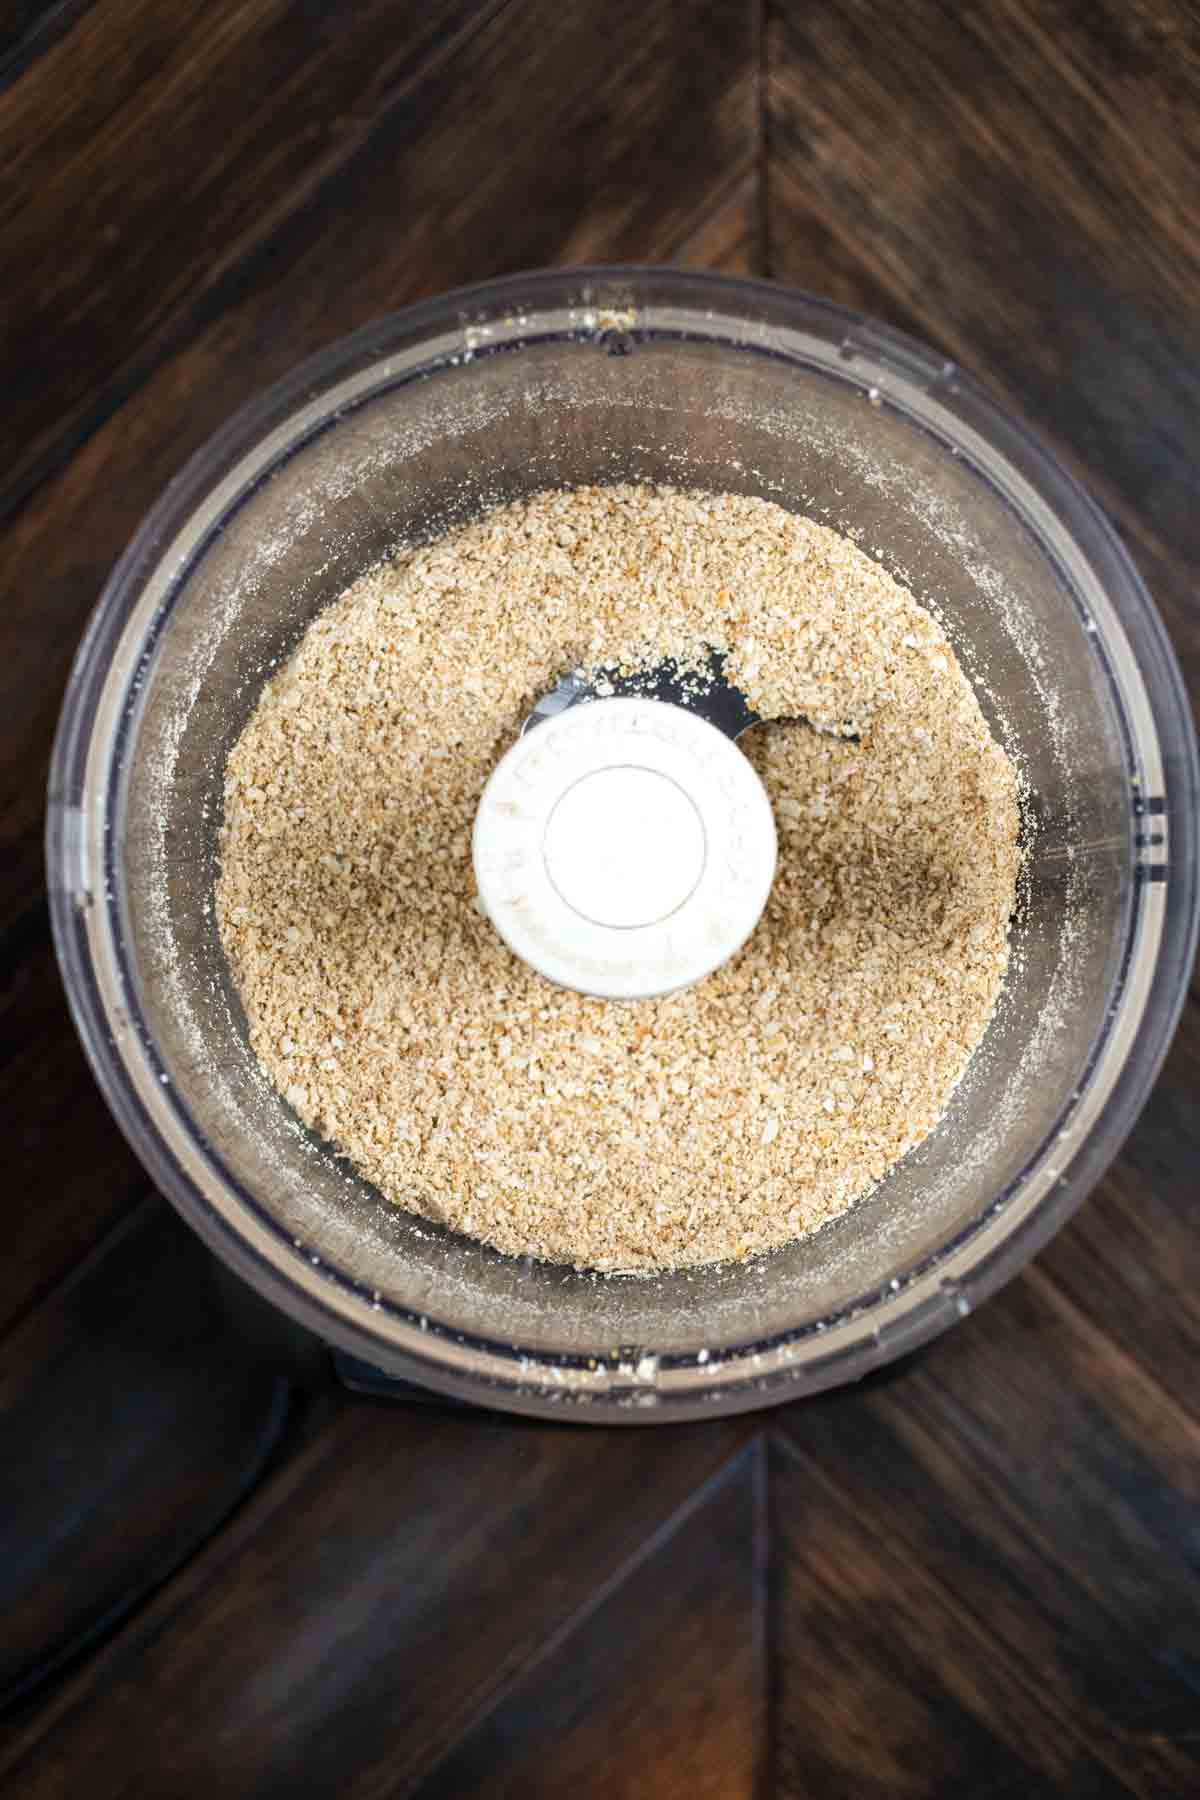 A food processor filled with oatmeal, flax egg, and coconut flakes, mixed together.